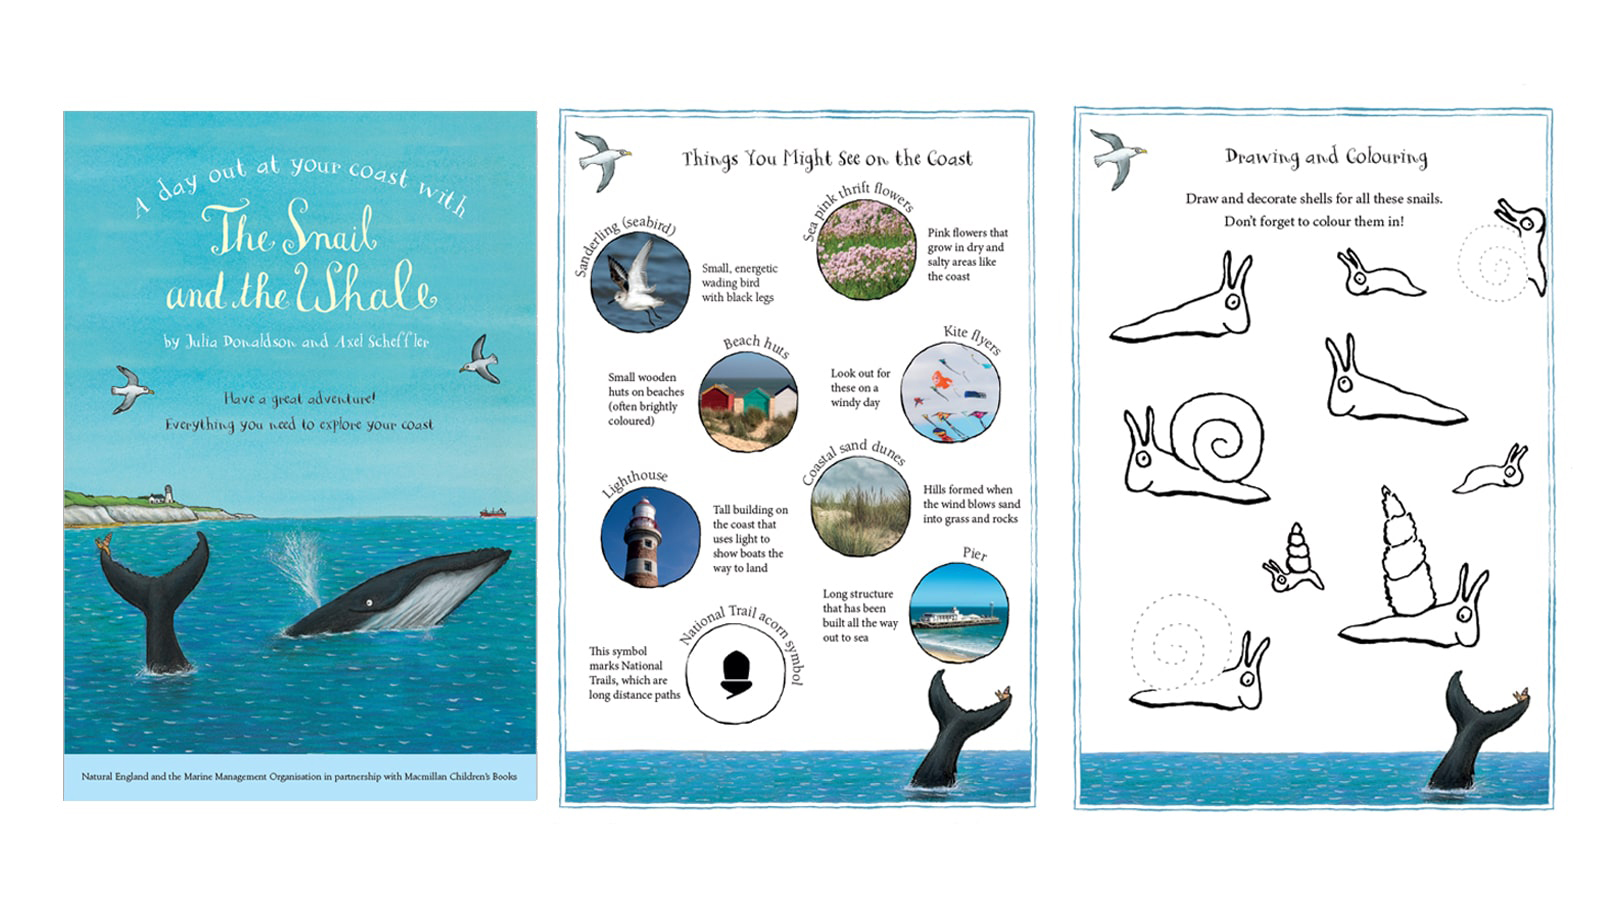 Have A Coastal Adventure With The Snail And The Whale